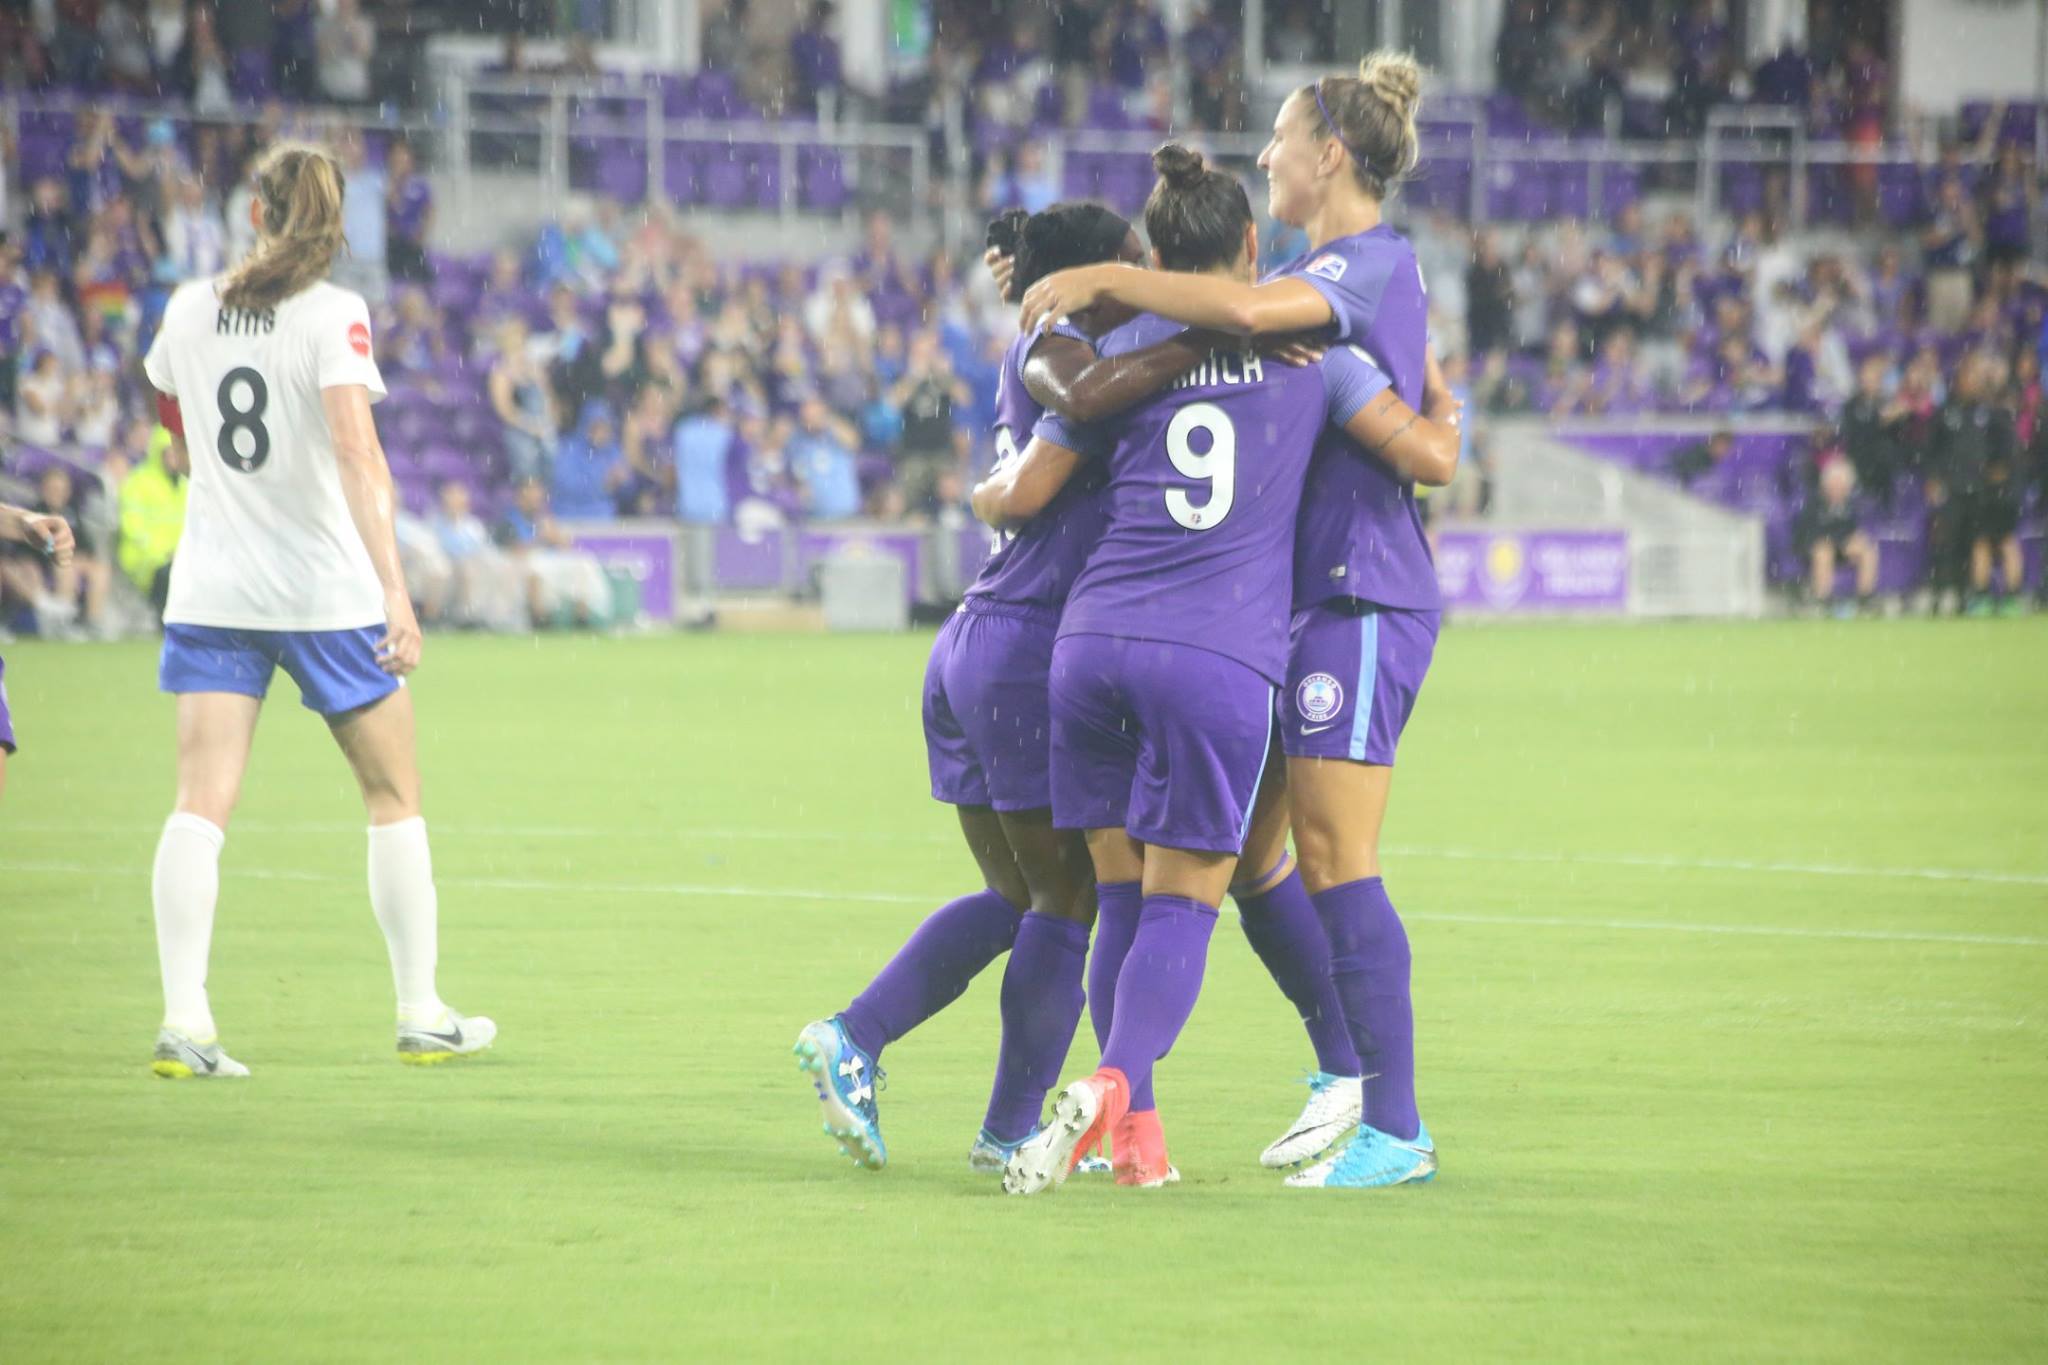 ORLANDO (FNN SPORTS) - (l-r) Jasmyne Spencer, Camilla, and Steph Catley celebrate Spencer's third season goal against Boston Breakers at Orlando City Stadium June 3, 2017. Photo: Willie David/Florida National News.